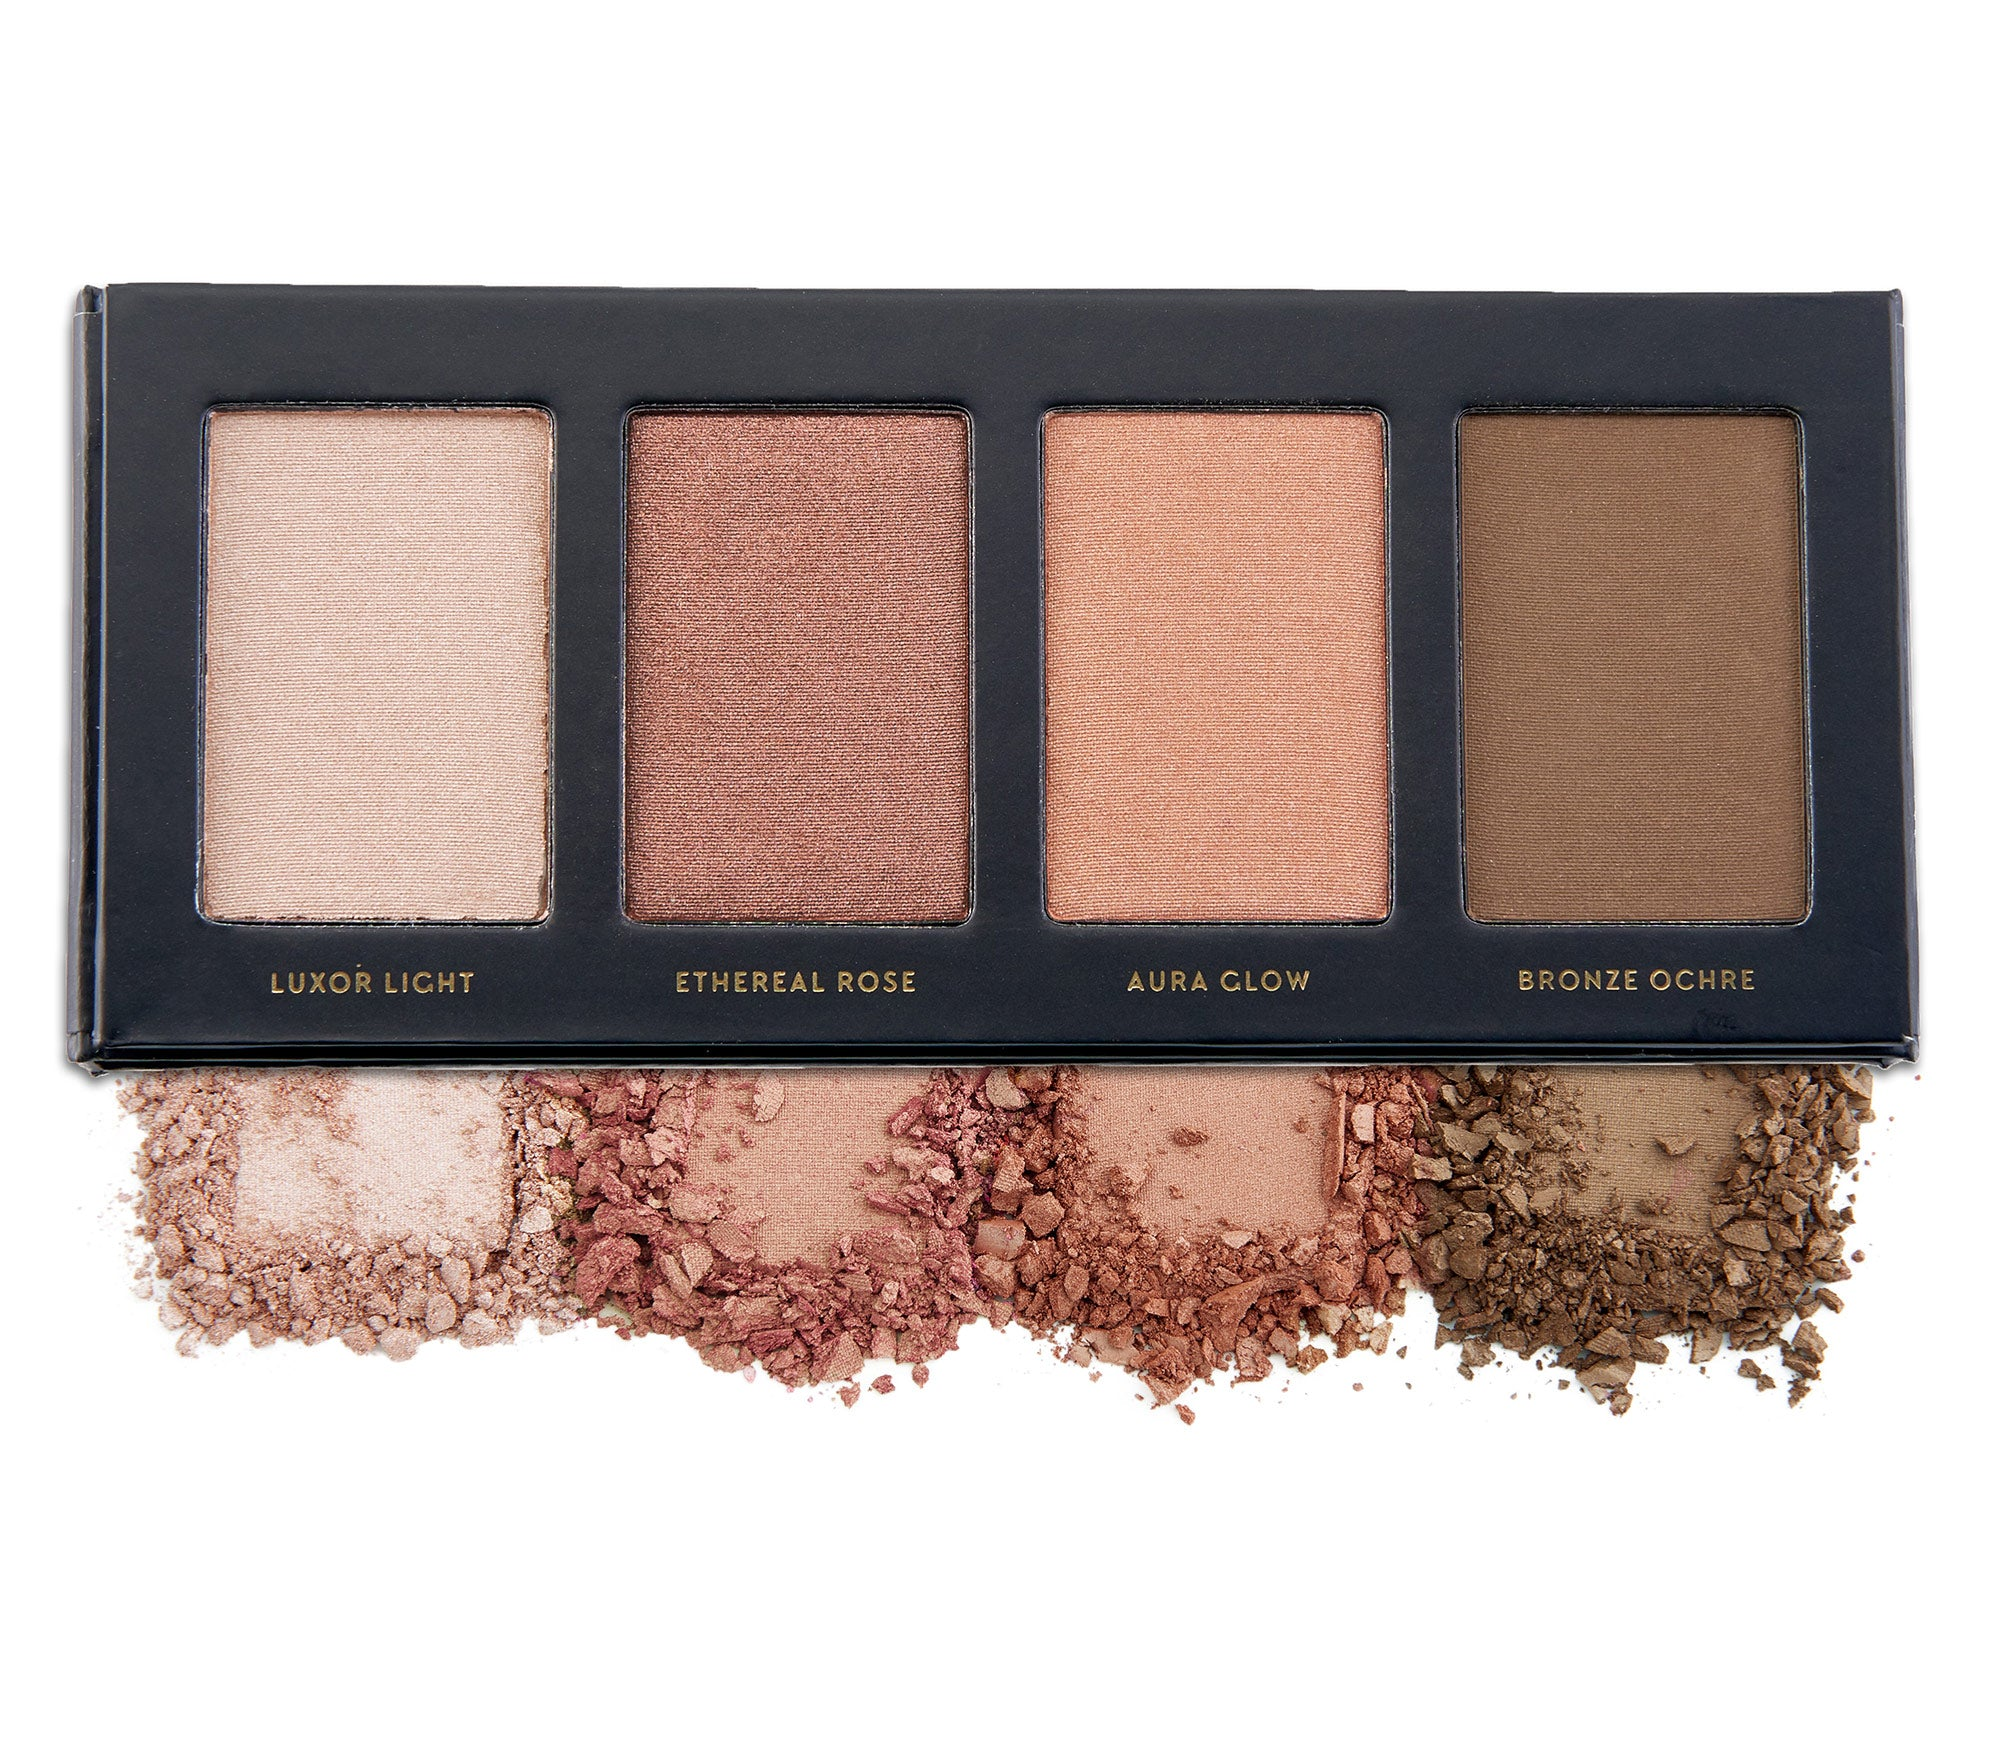 Love and Light Illuminating Palette